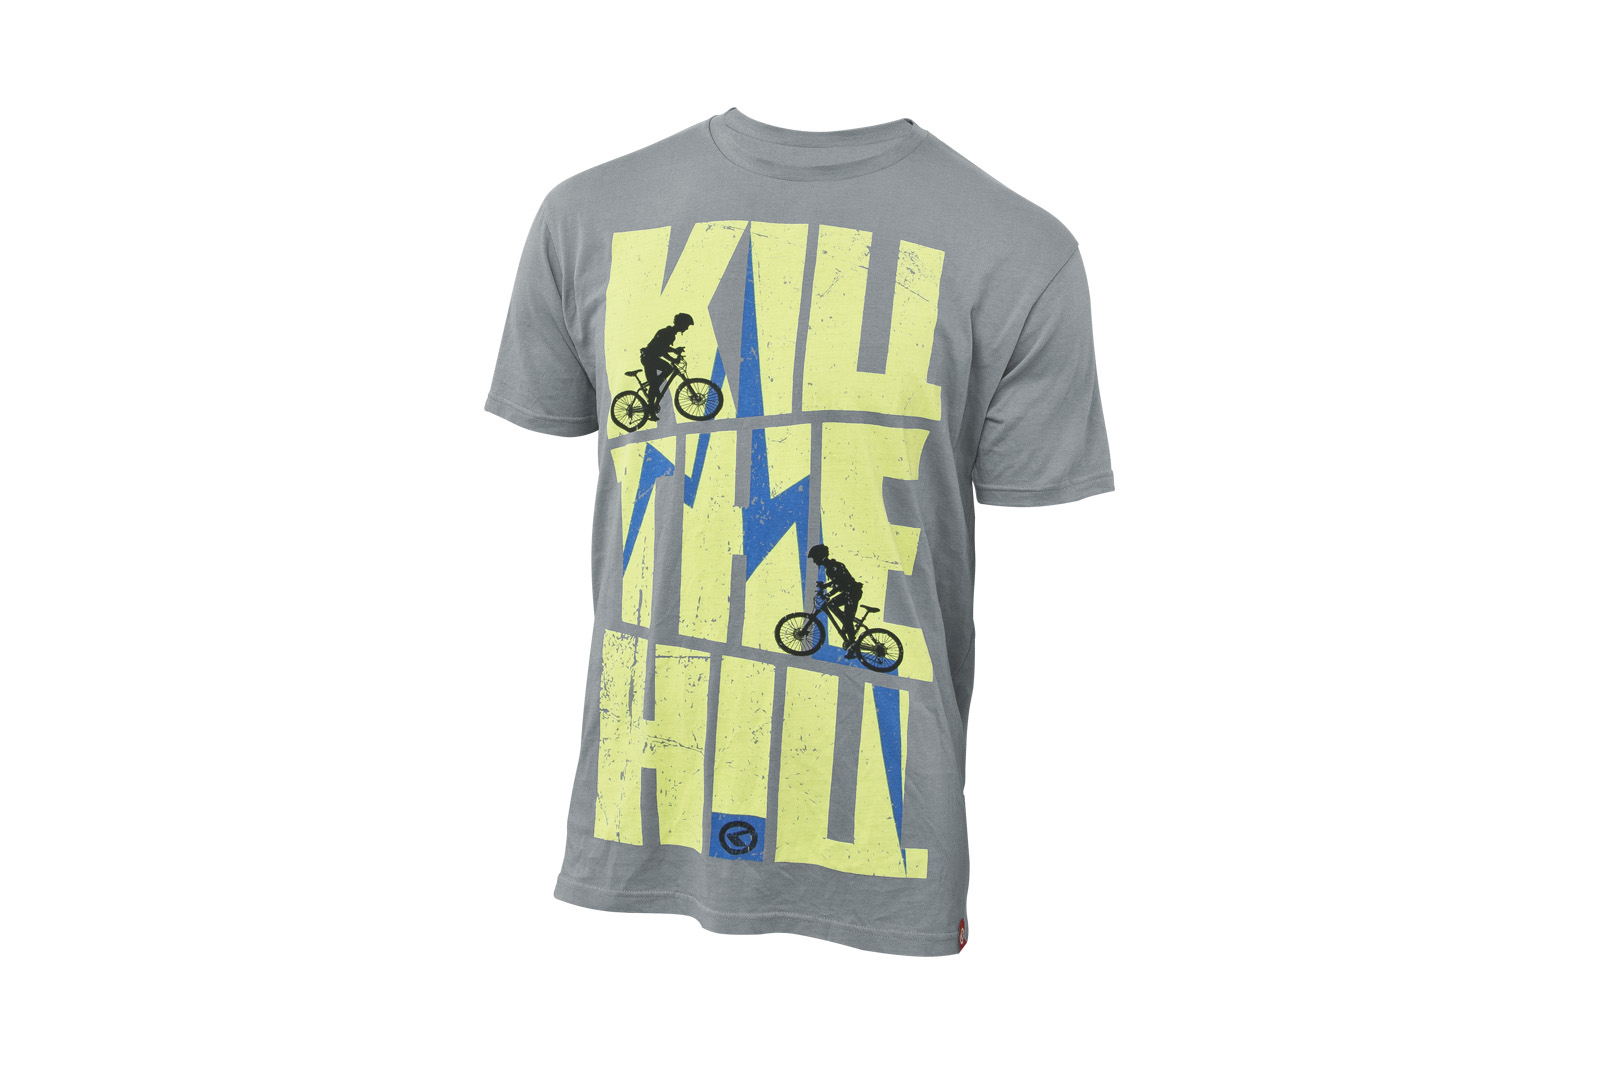 T-Shirt KELLYS KILL THE HILL kurzarm Grey - XXL - Fahrradhaus Haske